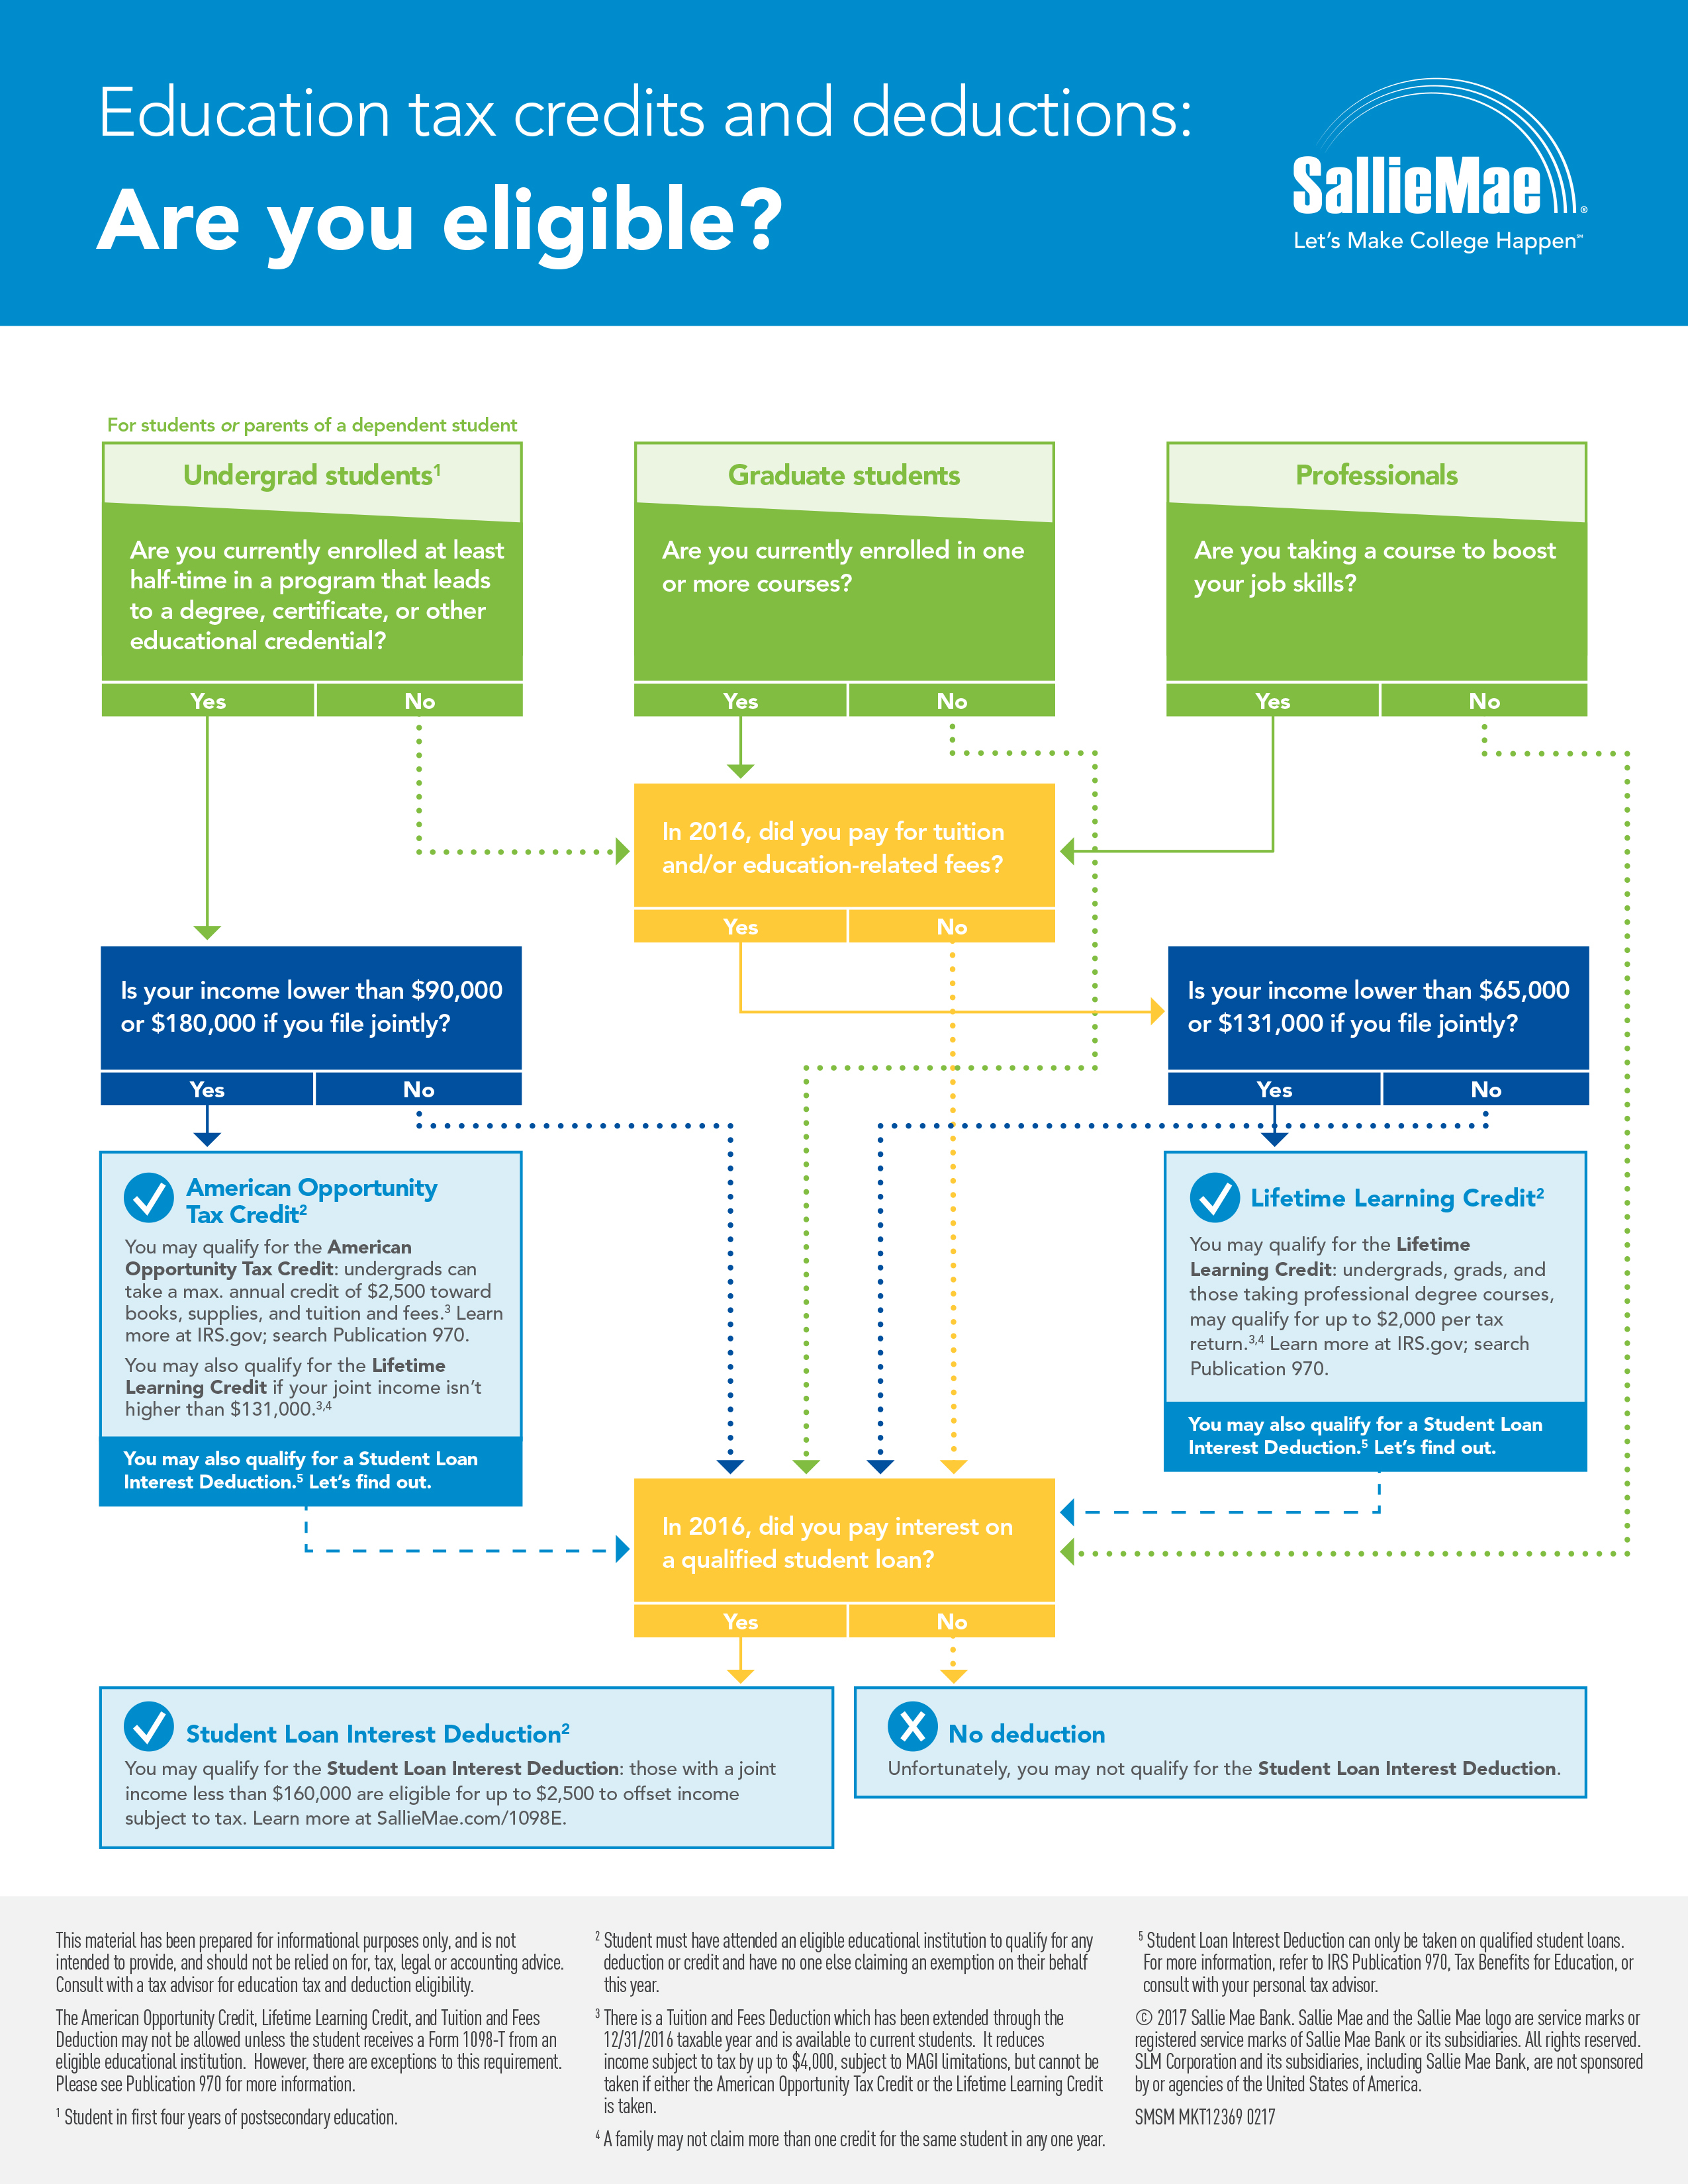 Sallie Mae Tax Tips 2017 Flow Chart (Graphic: Business Wire)